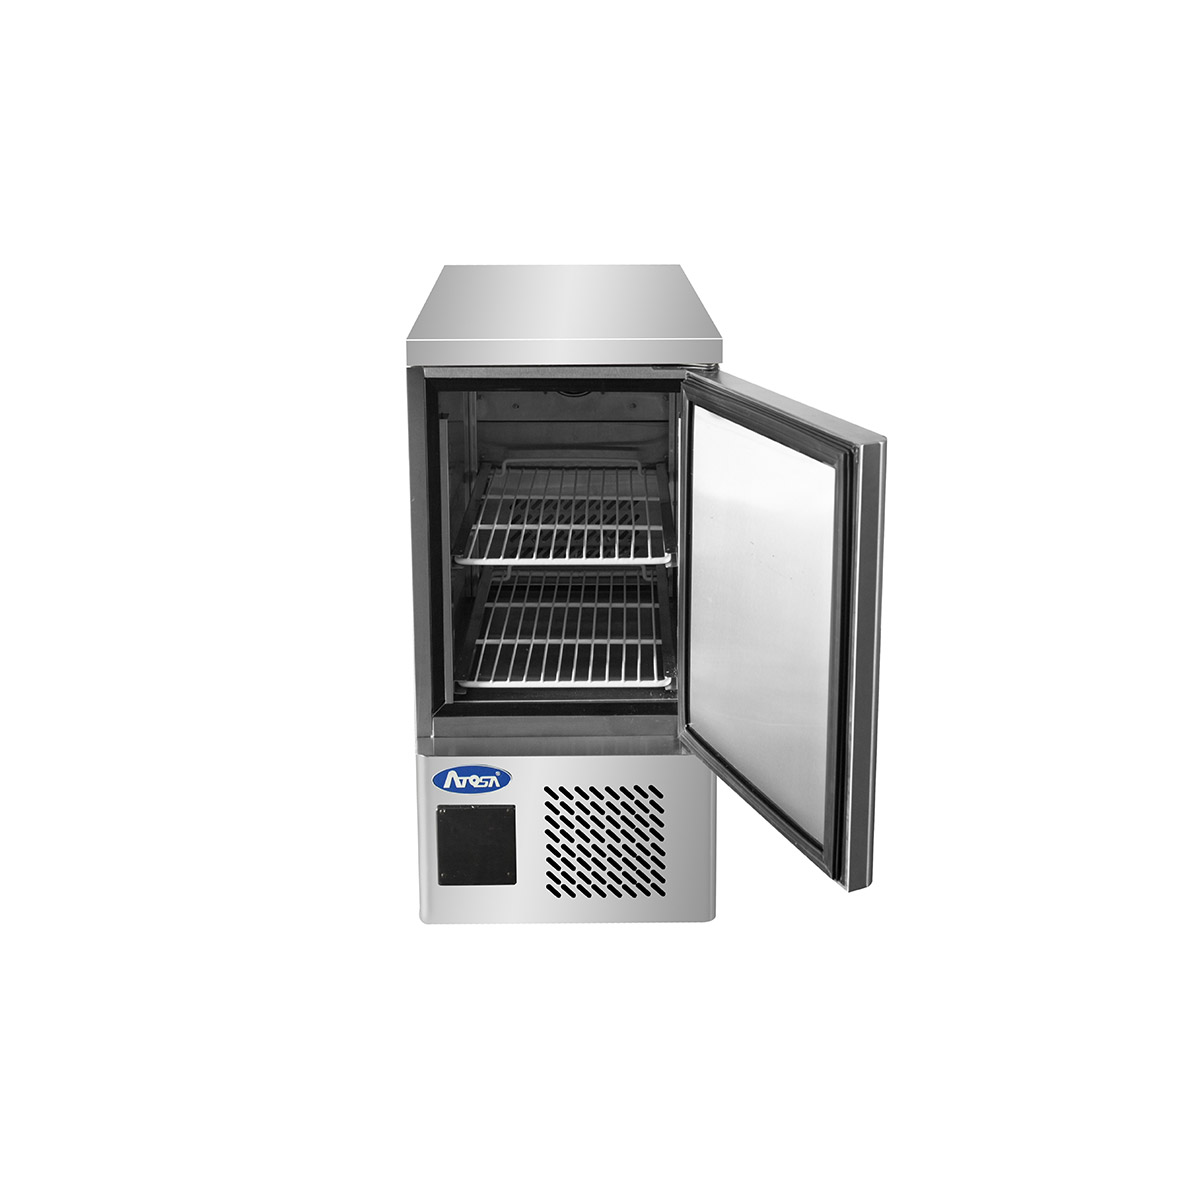 Atosa ESF4R Single Door Space Saving Counter Refrigerator